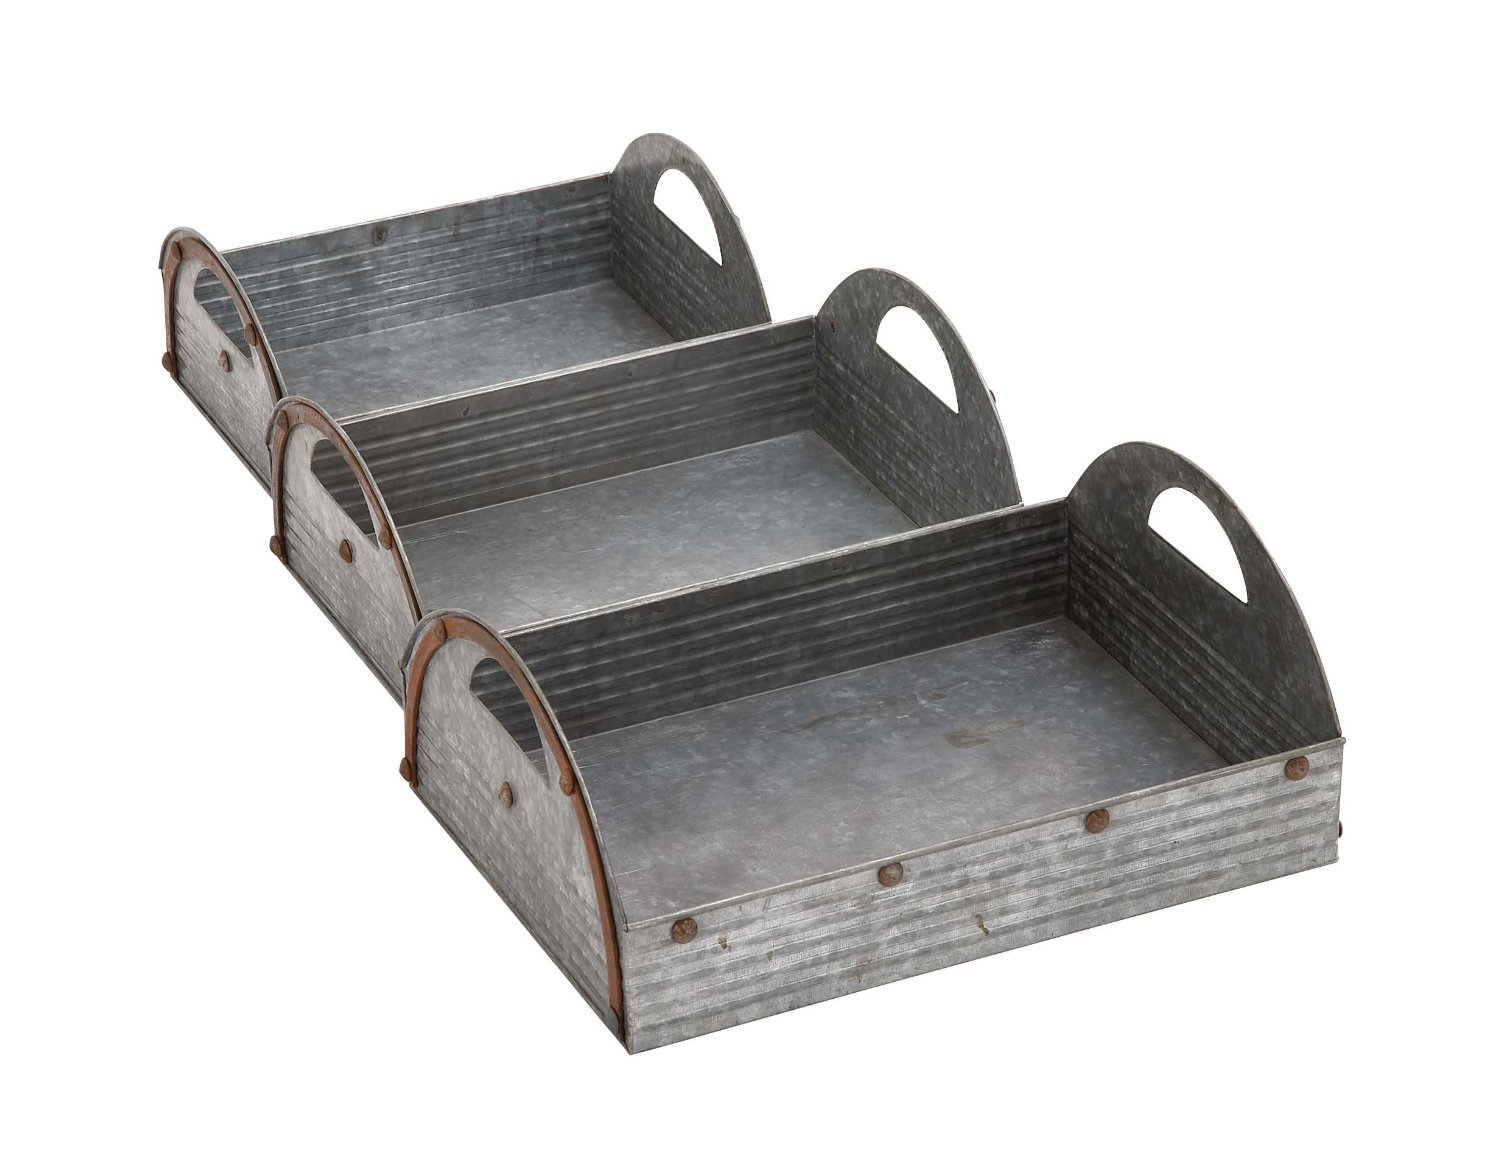 Plutus Brands Customary Styled Attractive Metal Tray